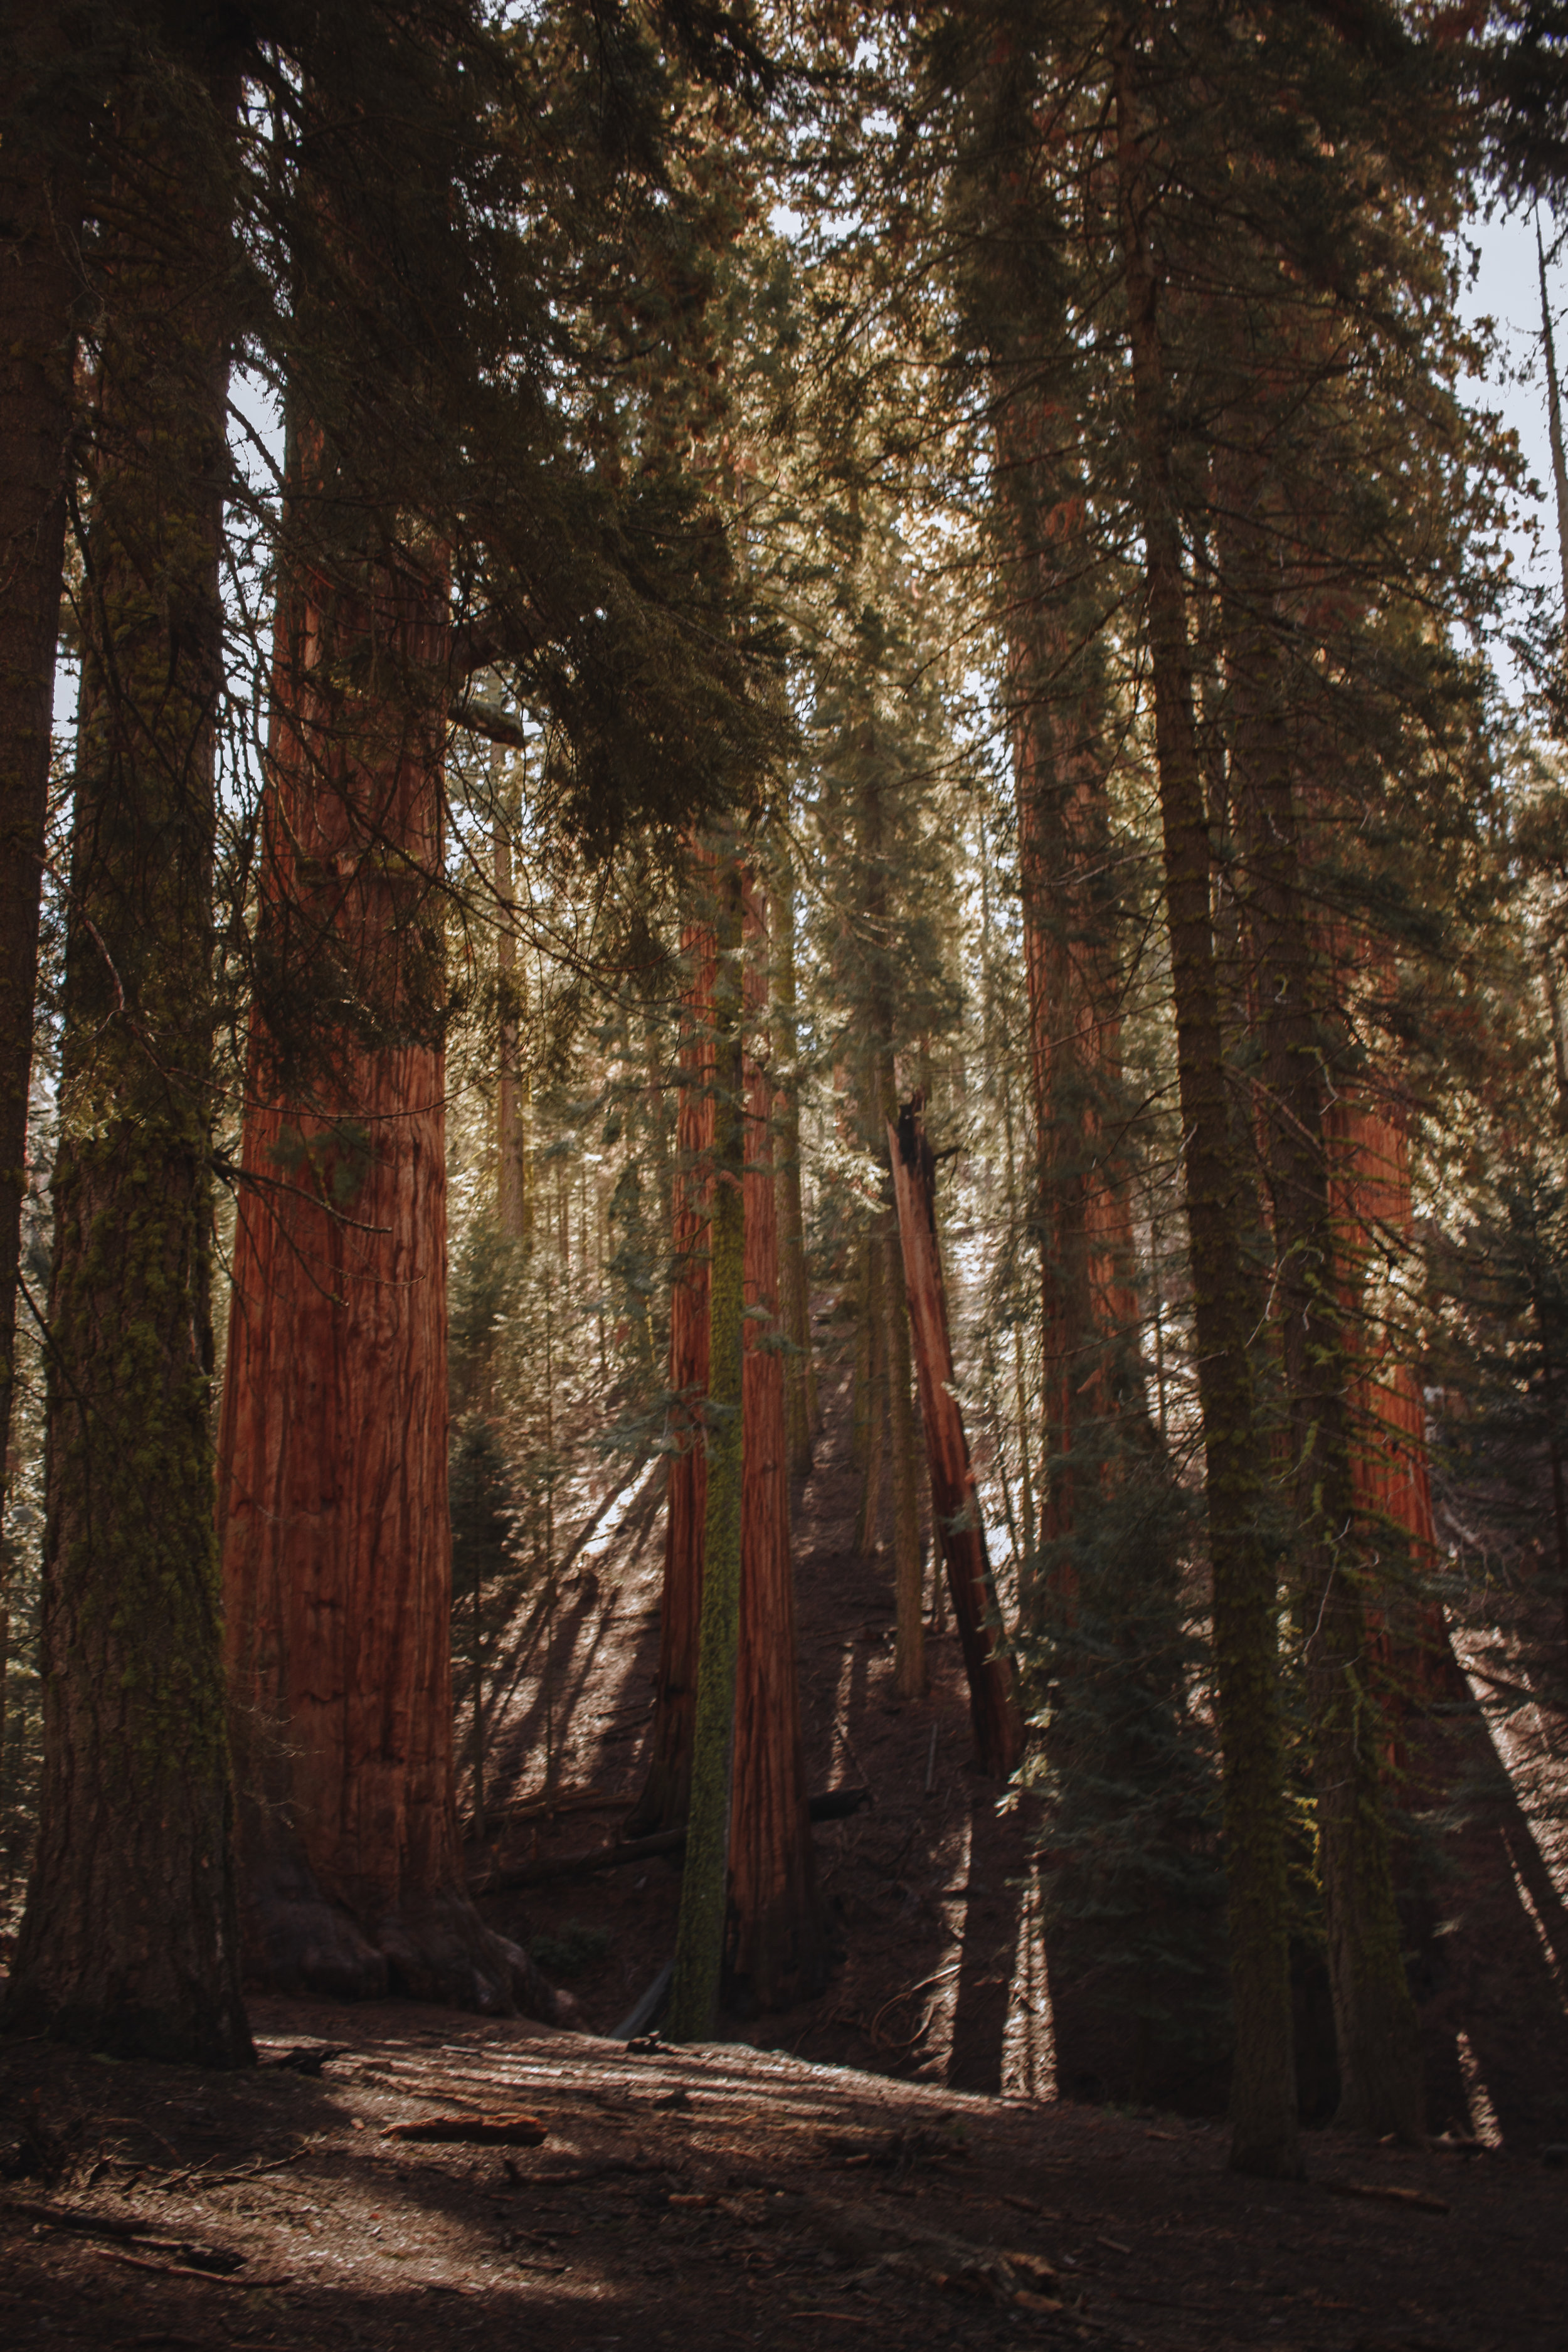 Redwood trees in the distance